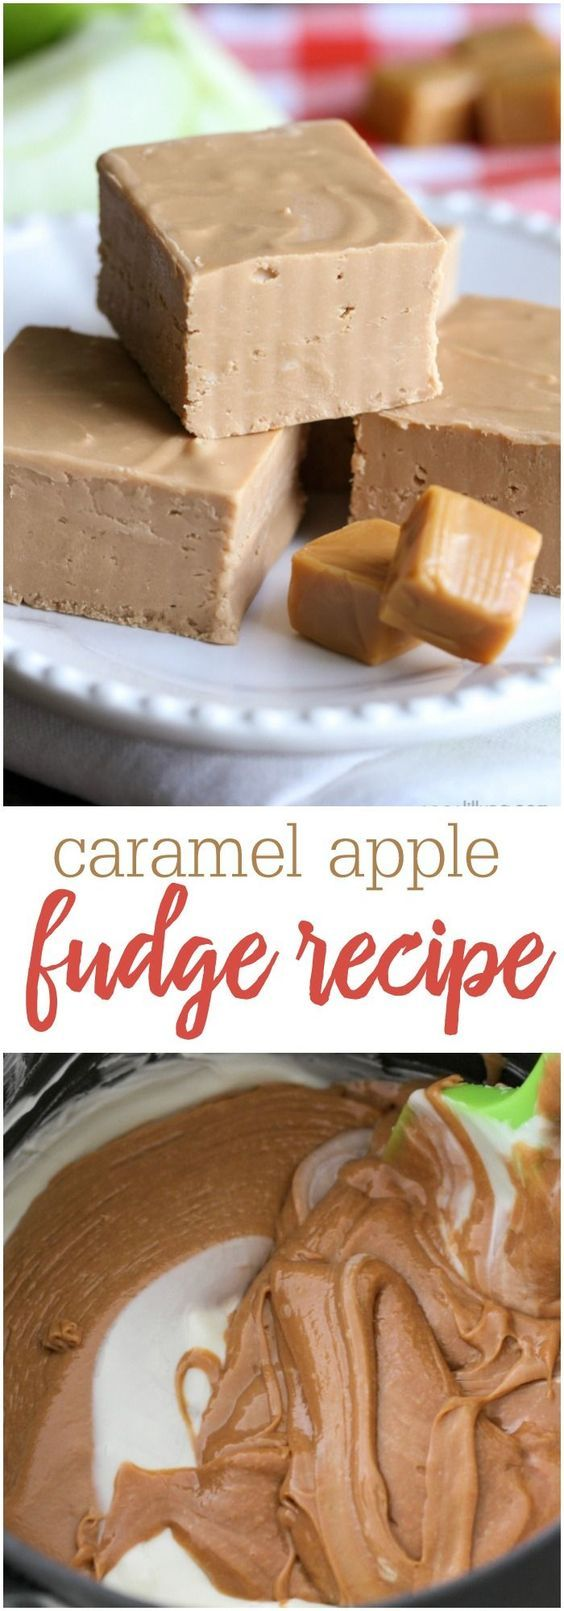 2-Ingredient Caramel Apple Fudge - so good and so easy to make!! Get the recipe on {2-Ingredient Caramel Apple Fudge - so good and so easy to make!! Get the recipe on {lilluna.com} All you need is some caramel apple frosting and white chocolate chips!!